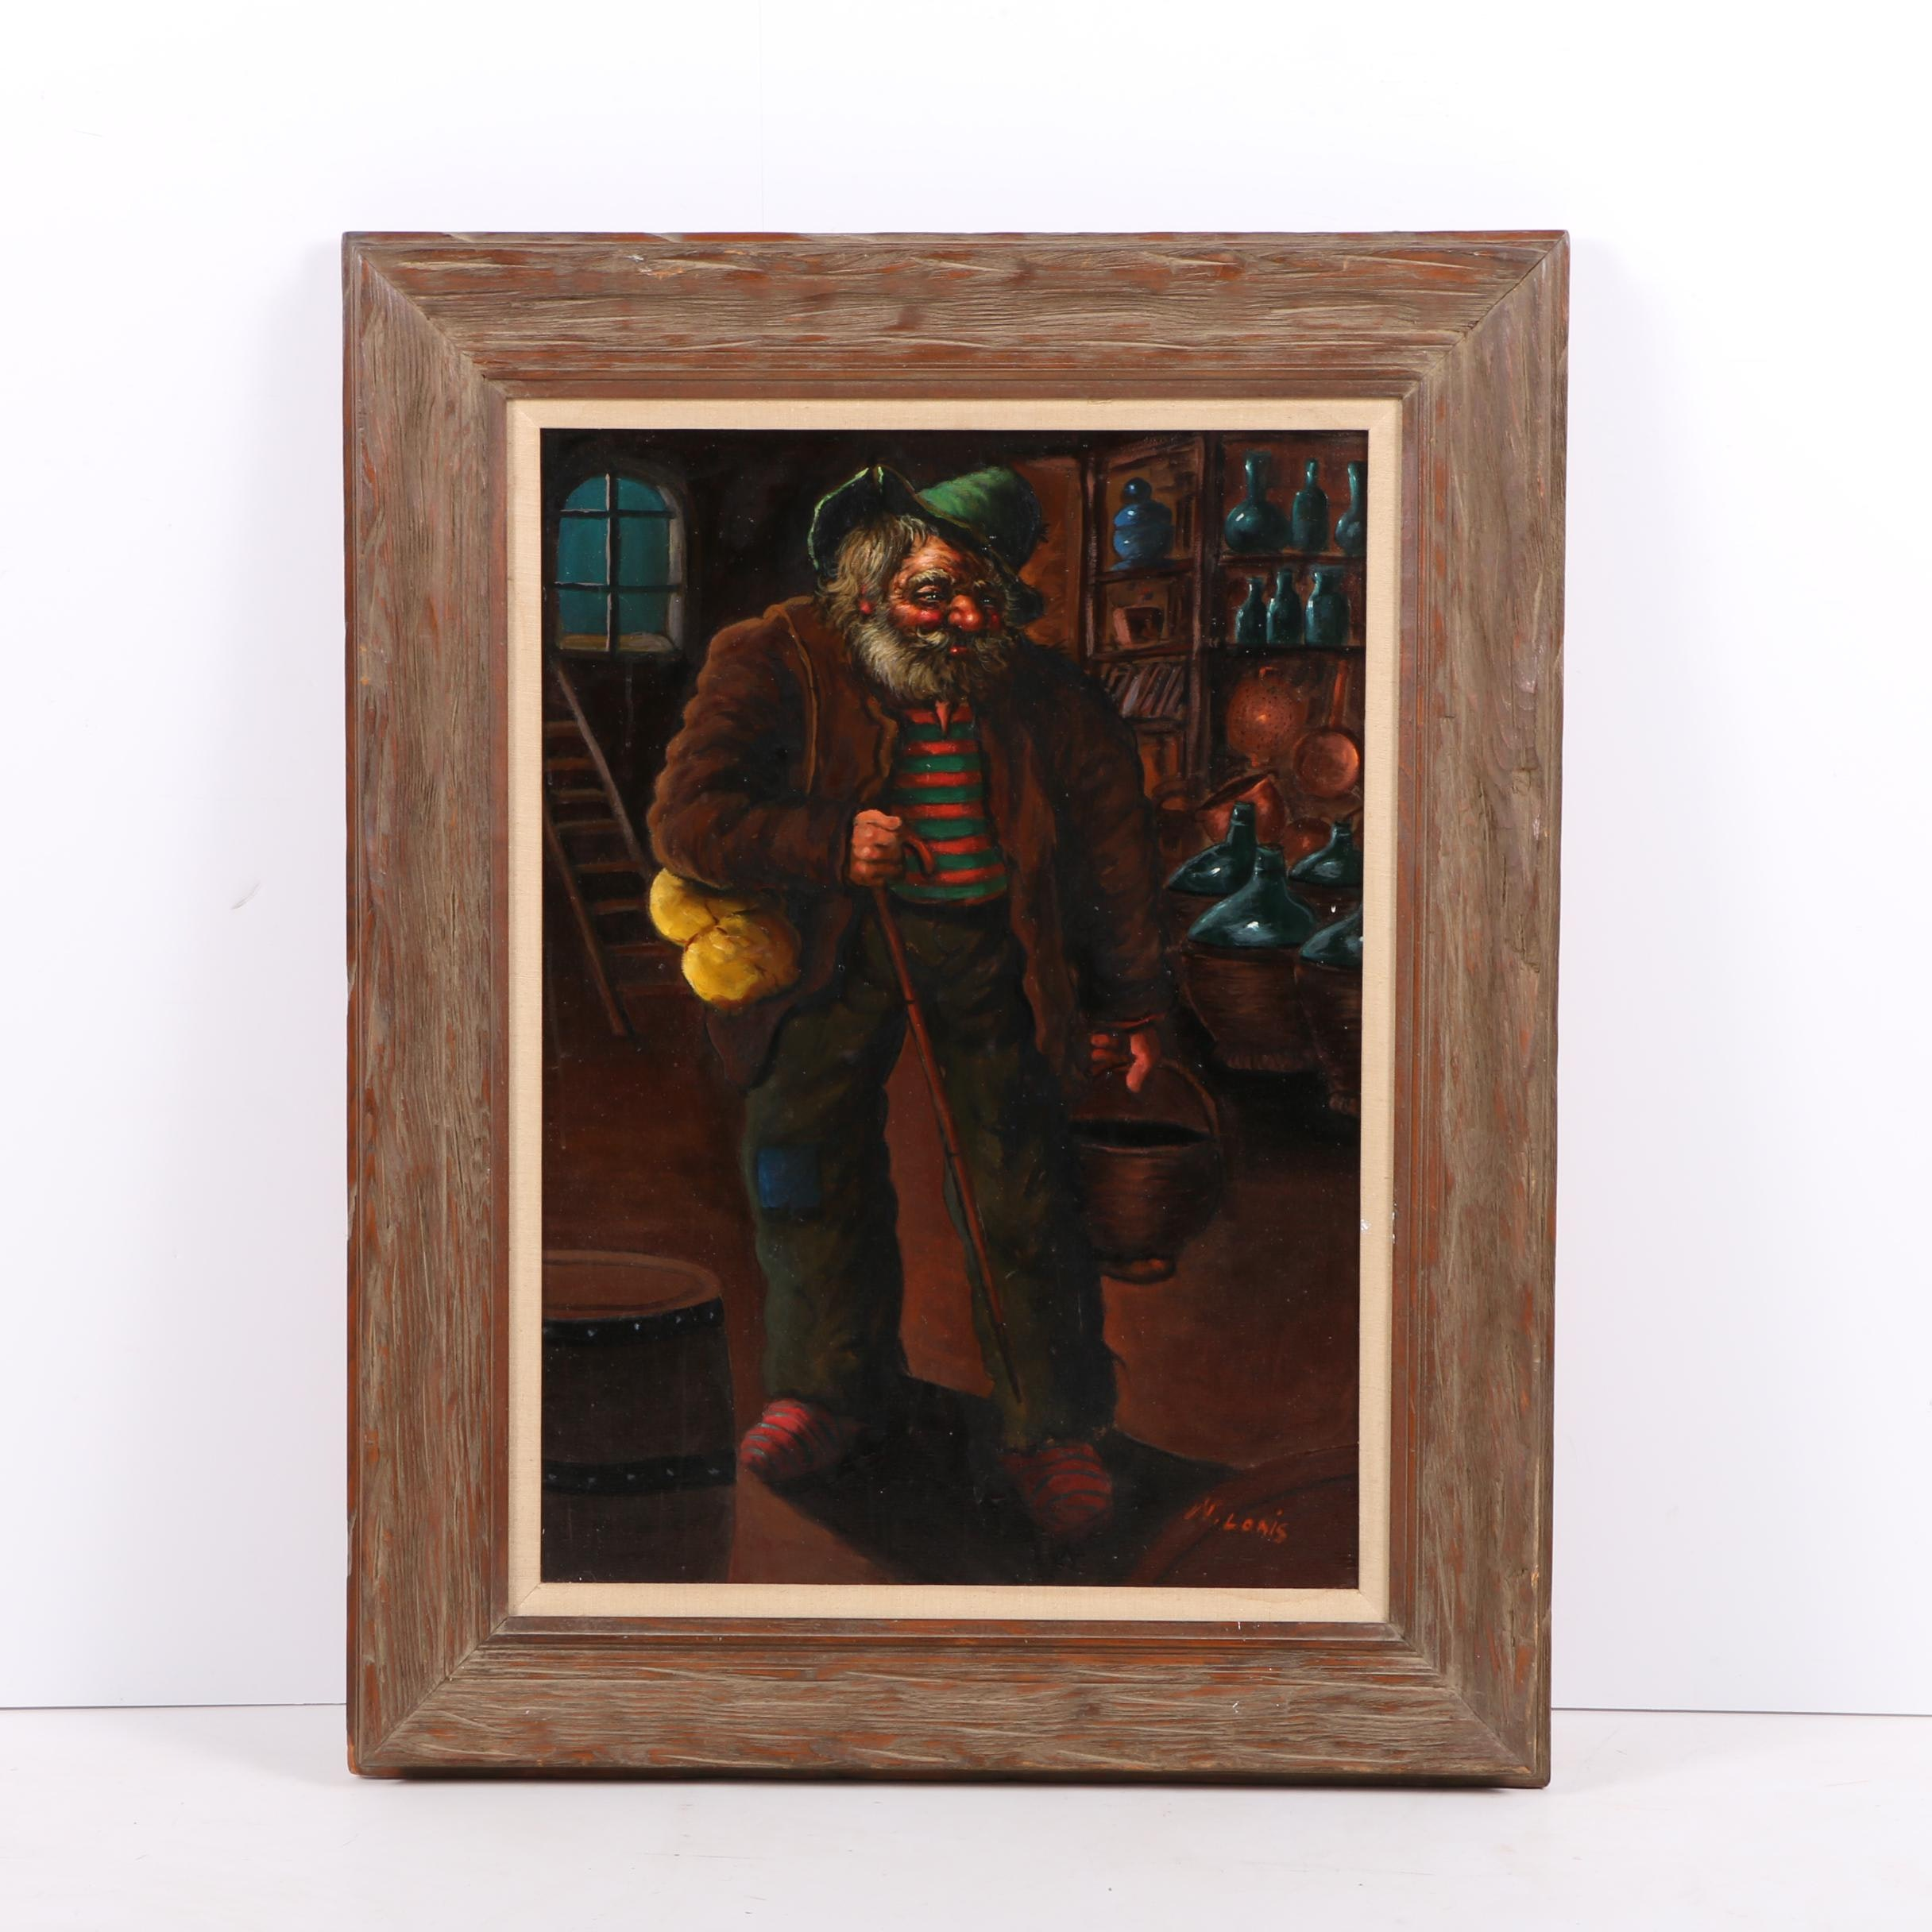 N. Lonis Oil Painting on Canvas of Bearded Man in Wine Cellar